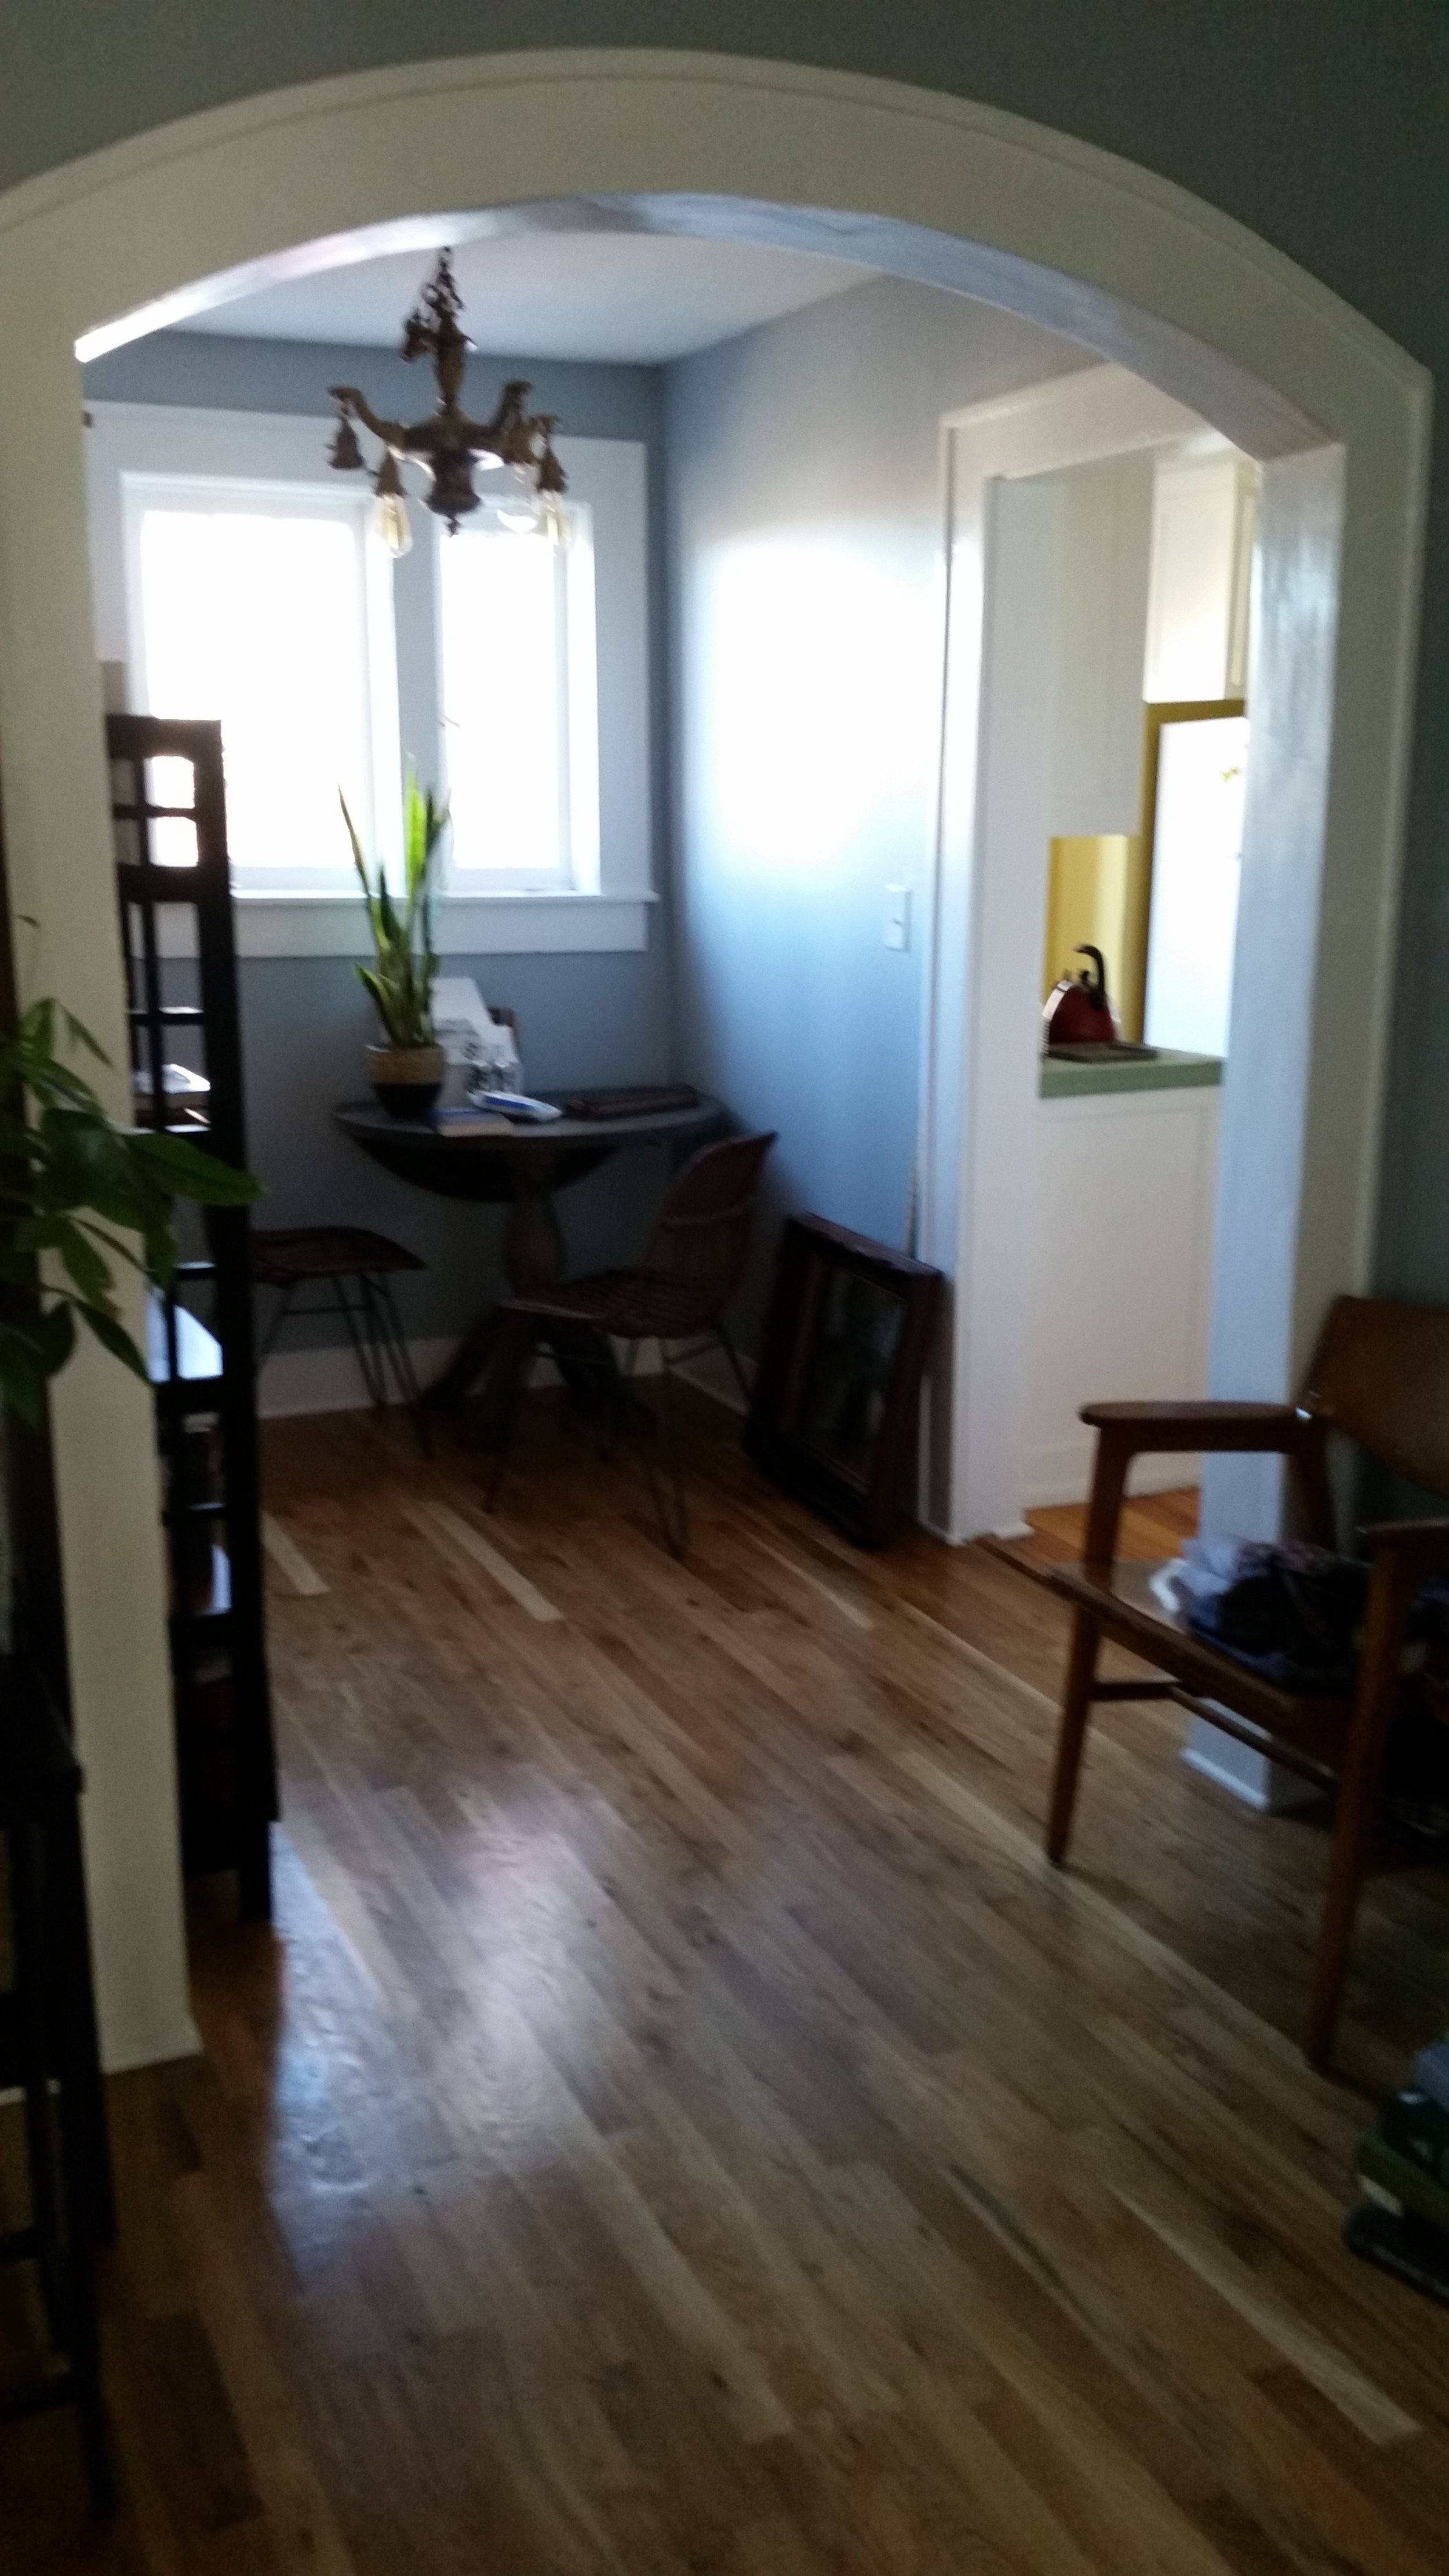 An upstairs downstairs duplex in an historic 1920 building off the red bricks of Camp Bowie Boulevard,